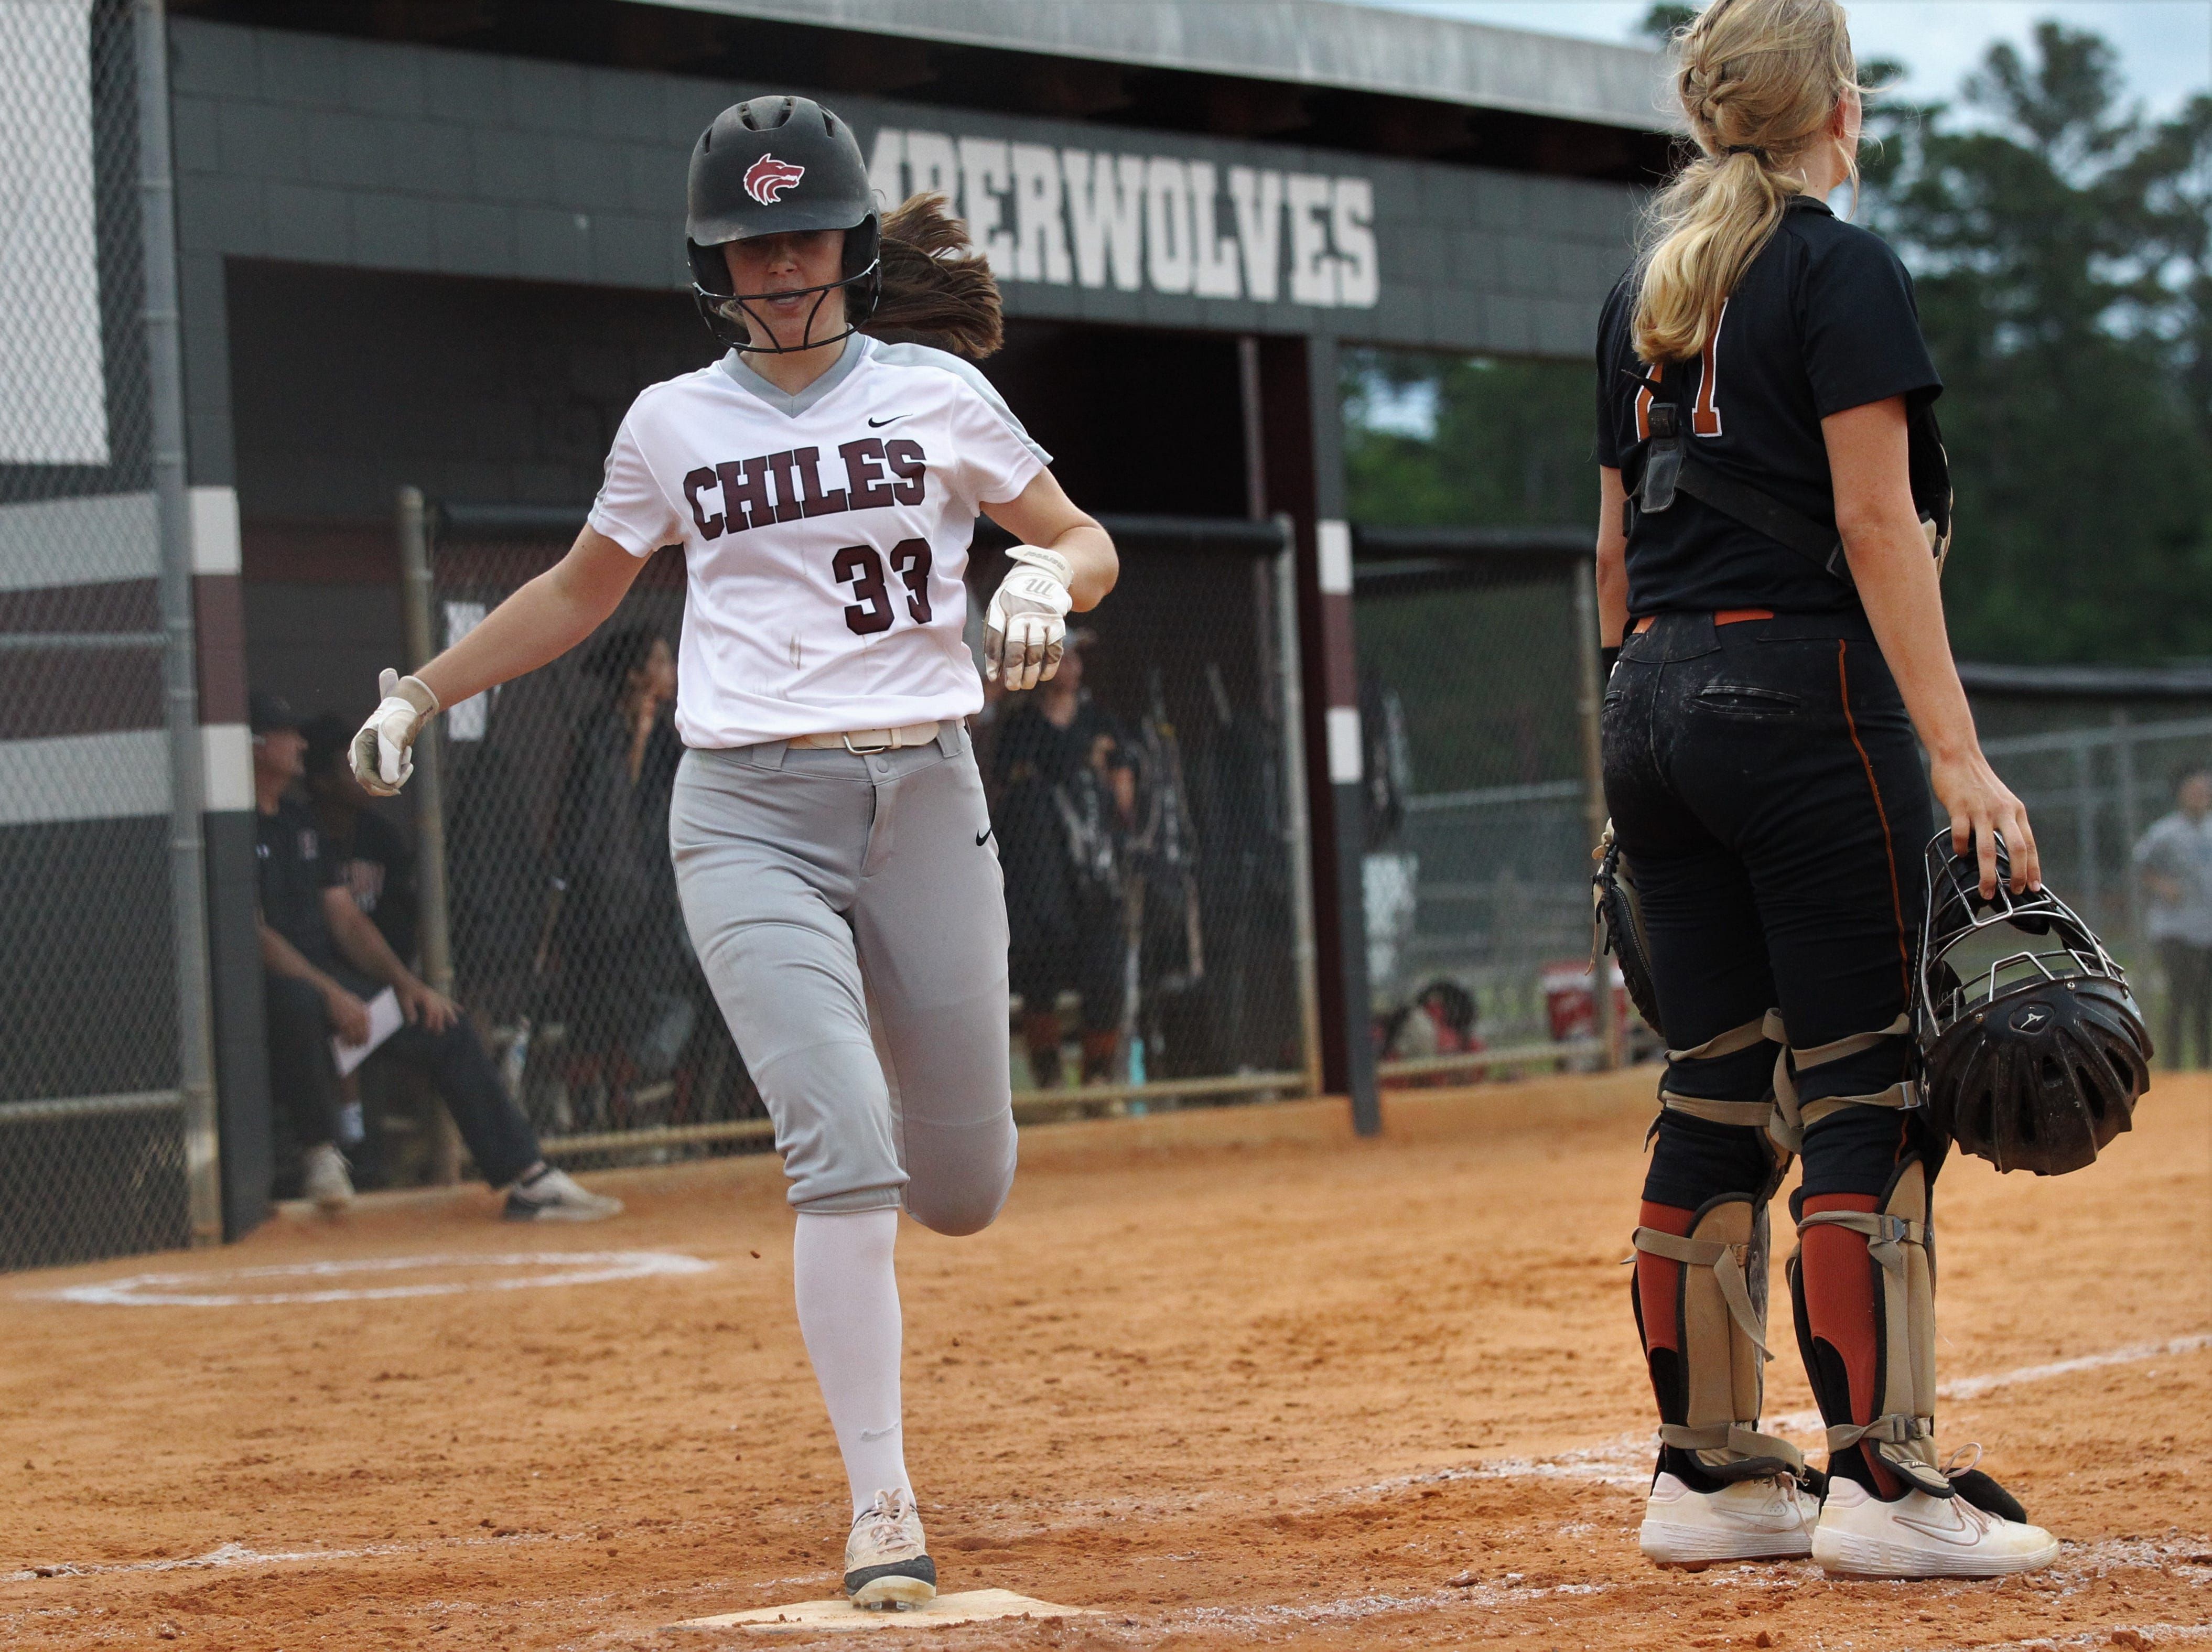 Chiles sophomore Meghan Lucas scores a run as the Timberwolves beat Atlantic Coast 6-4 during a Region 1-8A quarterfinal softball game on Wednesday, May 8, 2019.